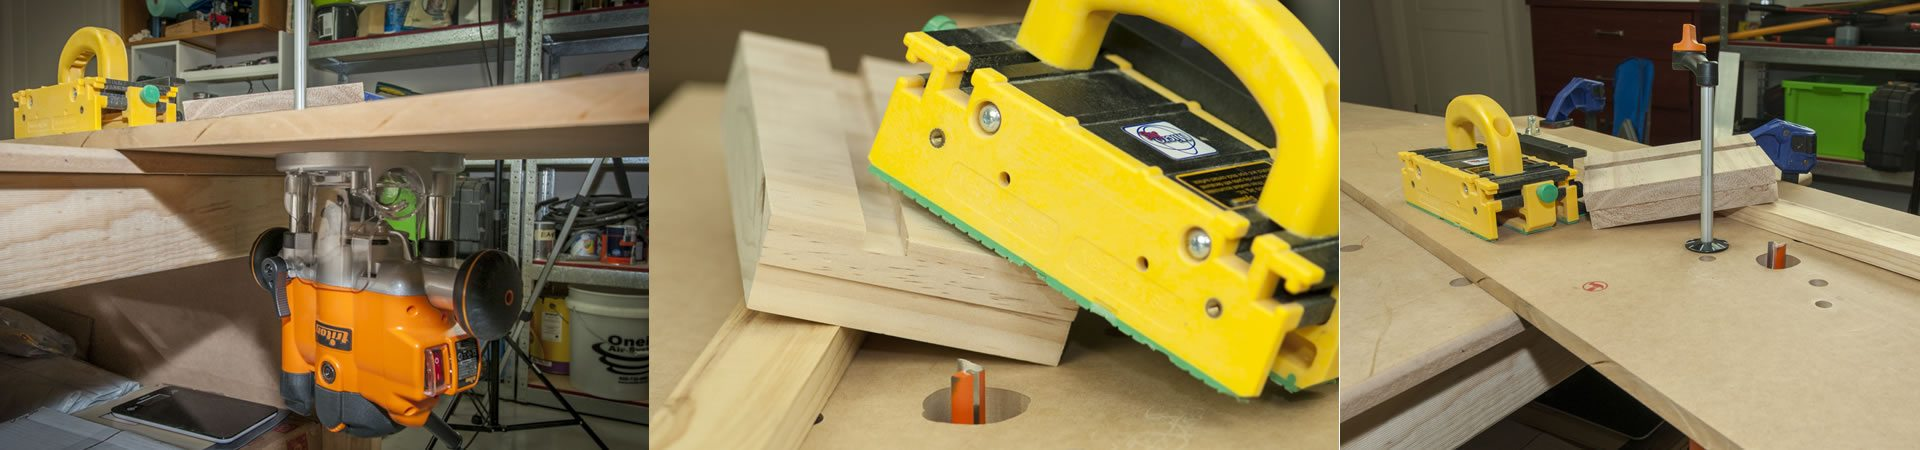 Build this Router Table for $10